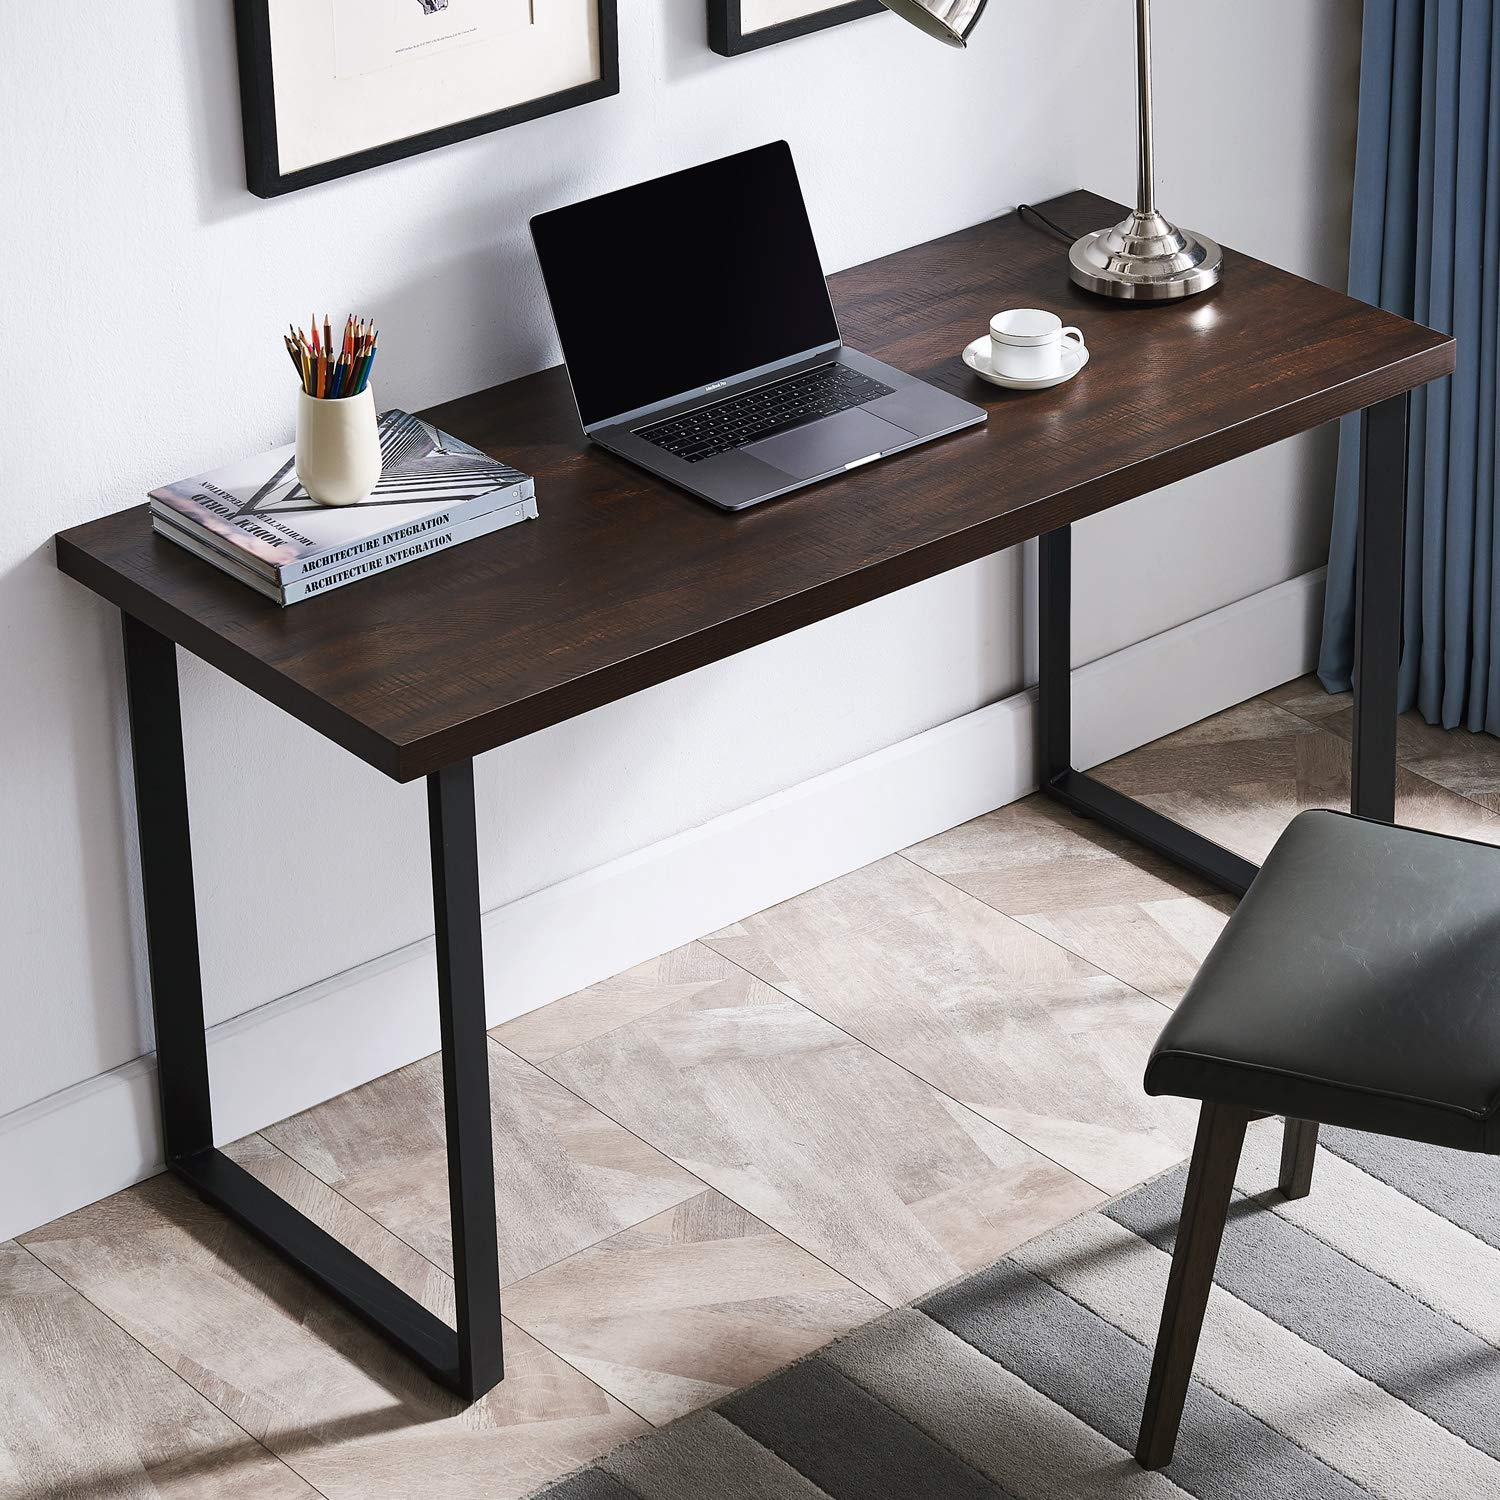 AMOAK Computer Desk 55'', Modern Writing Desk, Simple Study Table, Industrial Office Desk, Sturdy Laptop Table for Home Office, Brown